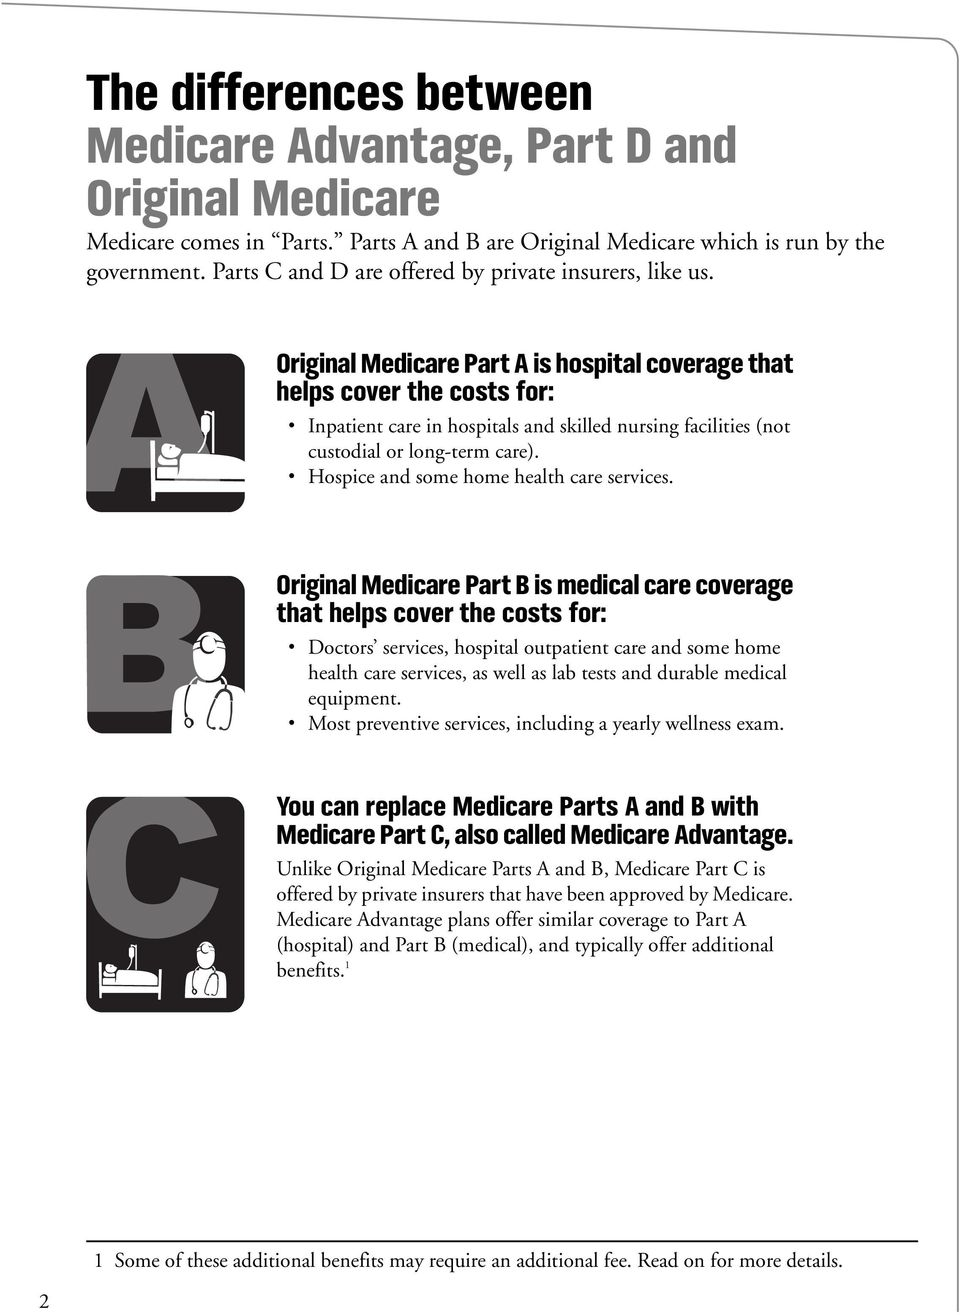 Original Medicare Part A is hospital coverage that helps cover the costs for: 1 Inpatient care in hospitals and skilled nursing facilities (not custodial or long-term care).